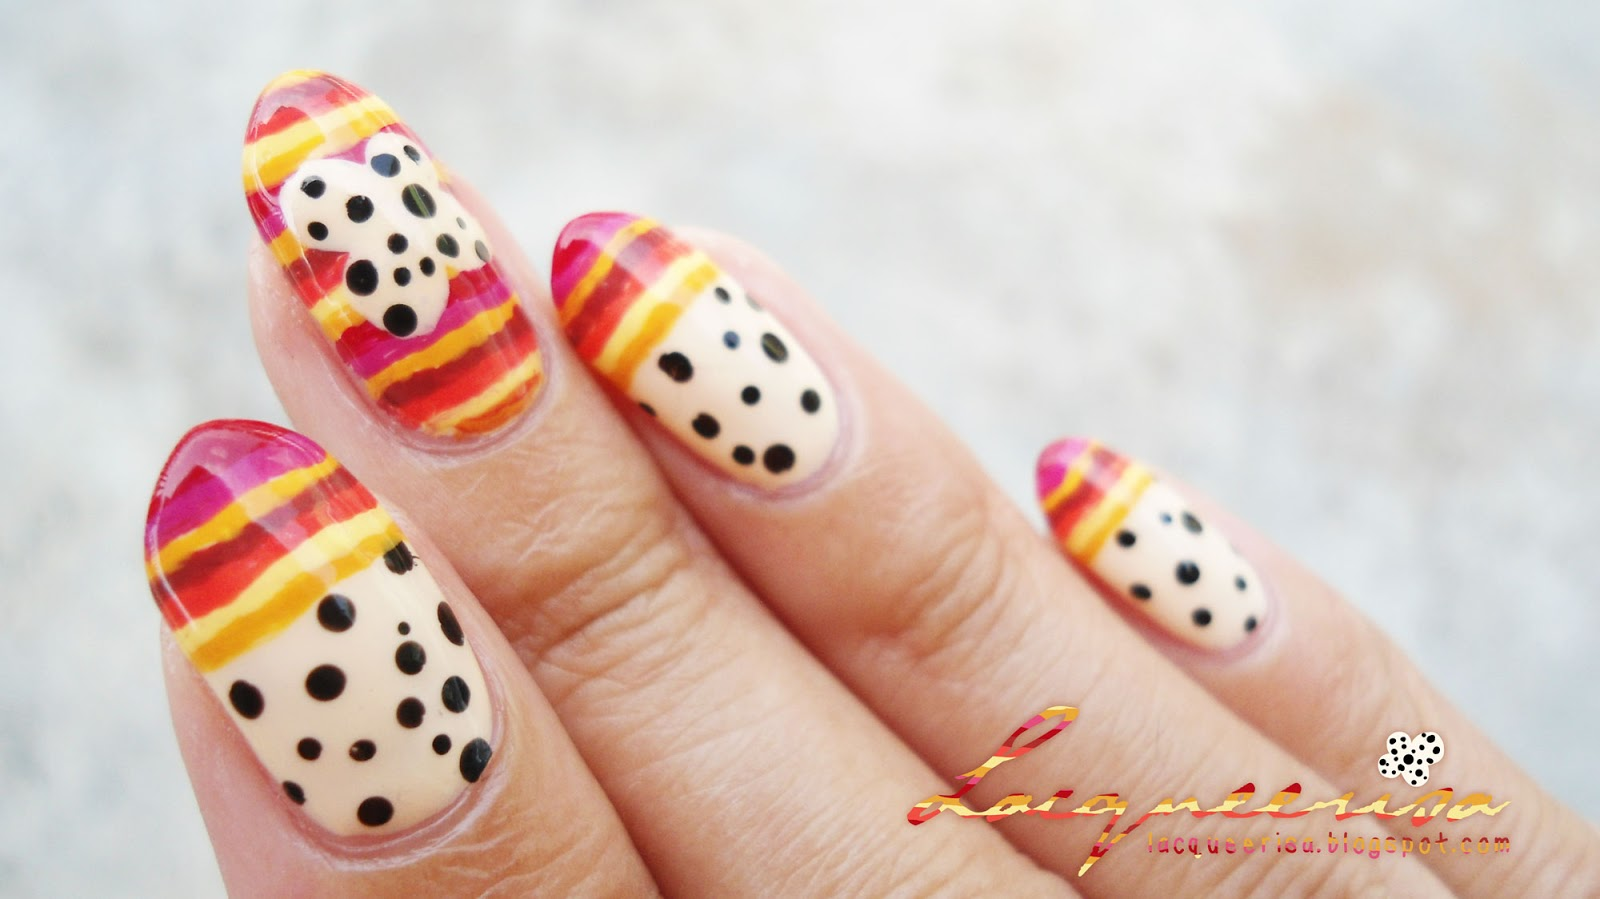 Lacqueerisa: Bright Stripes, Little Spots